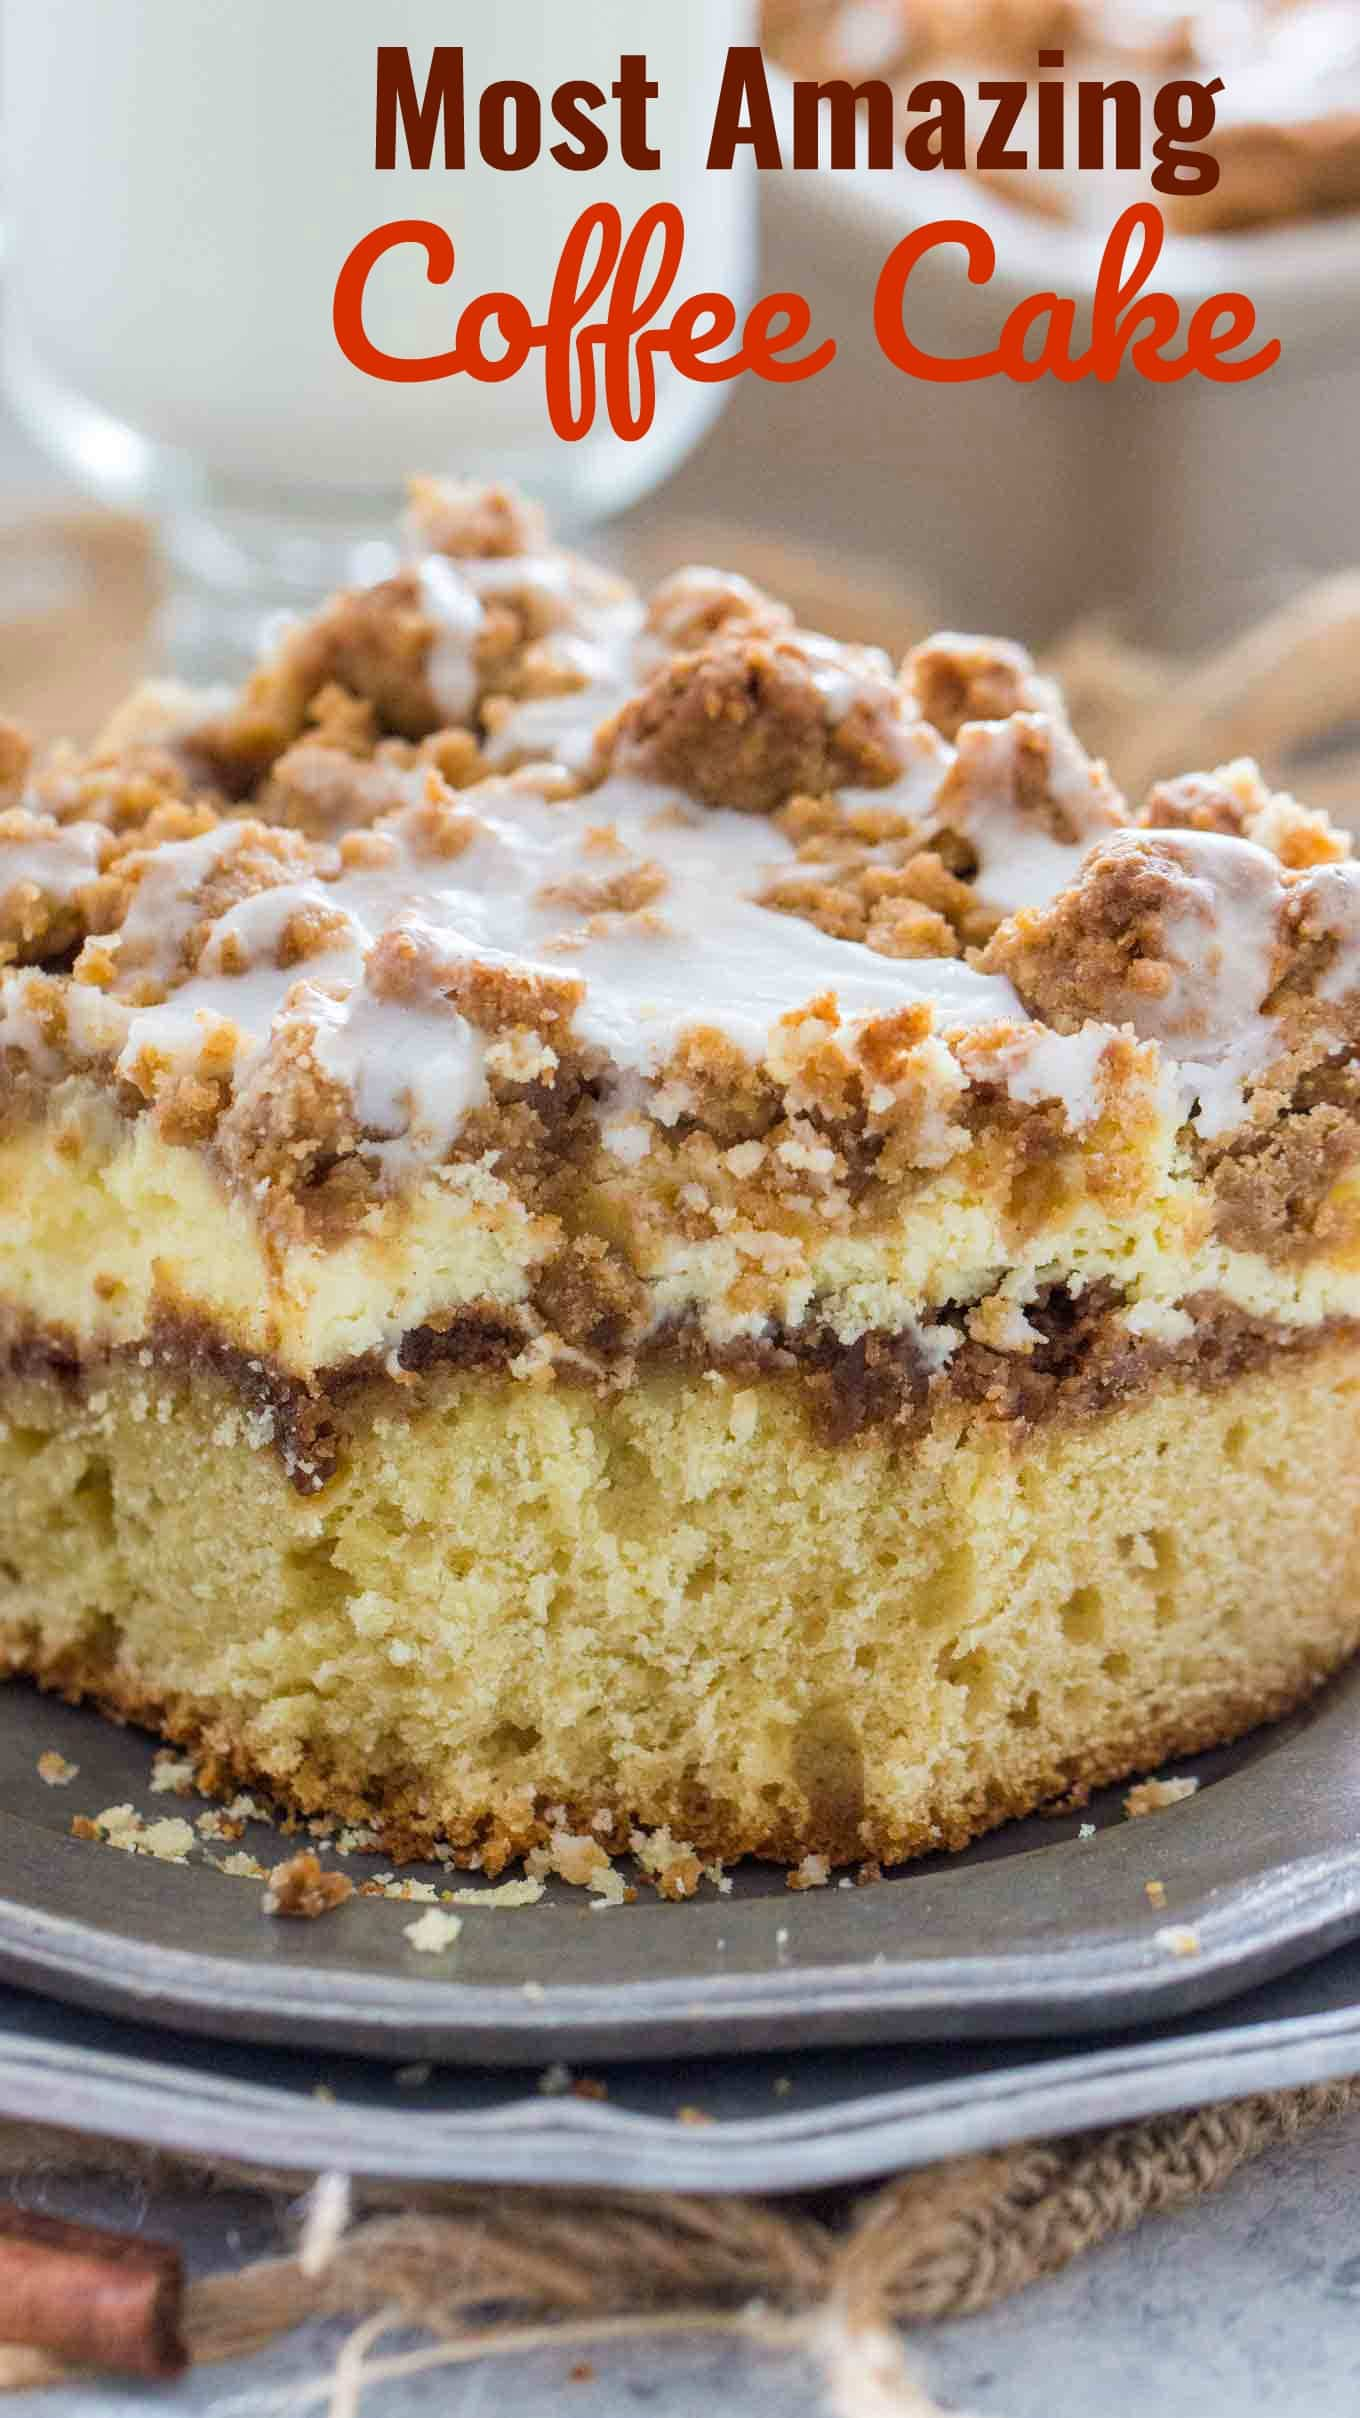 Best Coffee Cake Recipe with a Cheesecake Layer